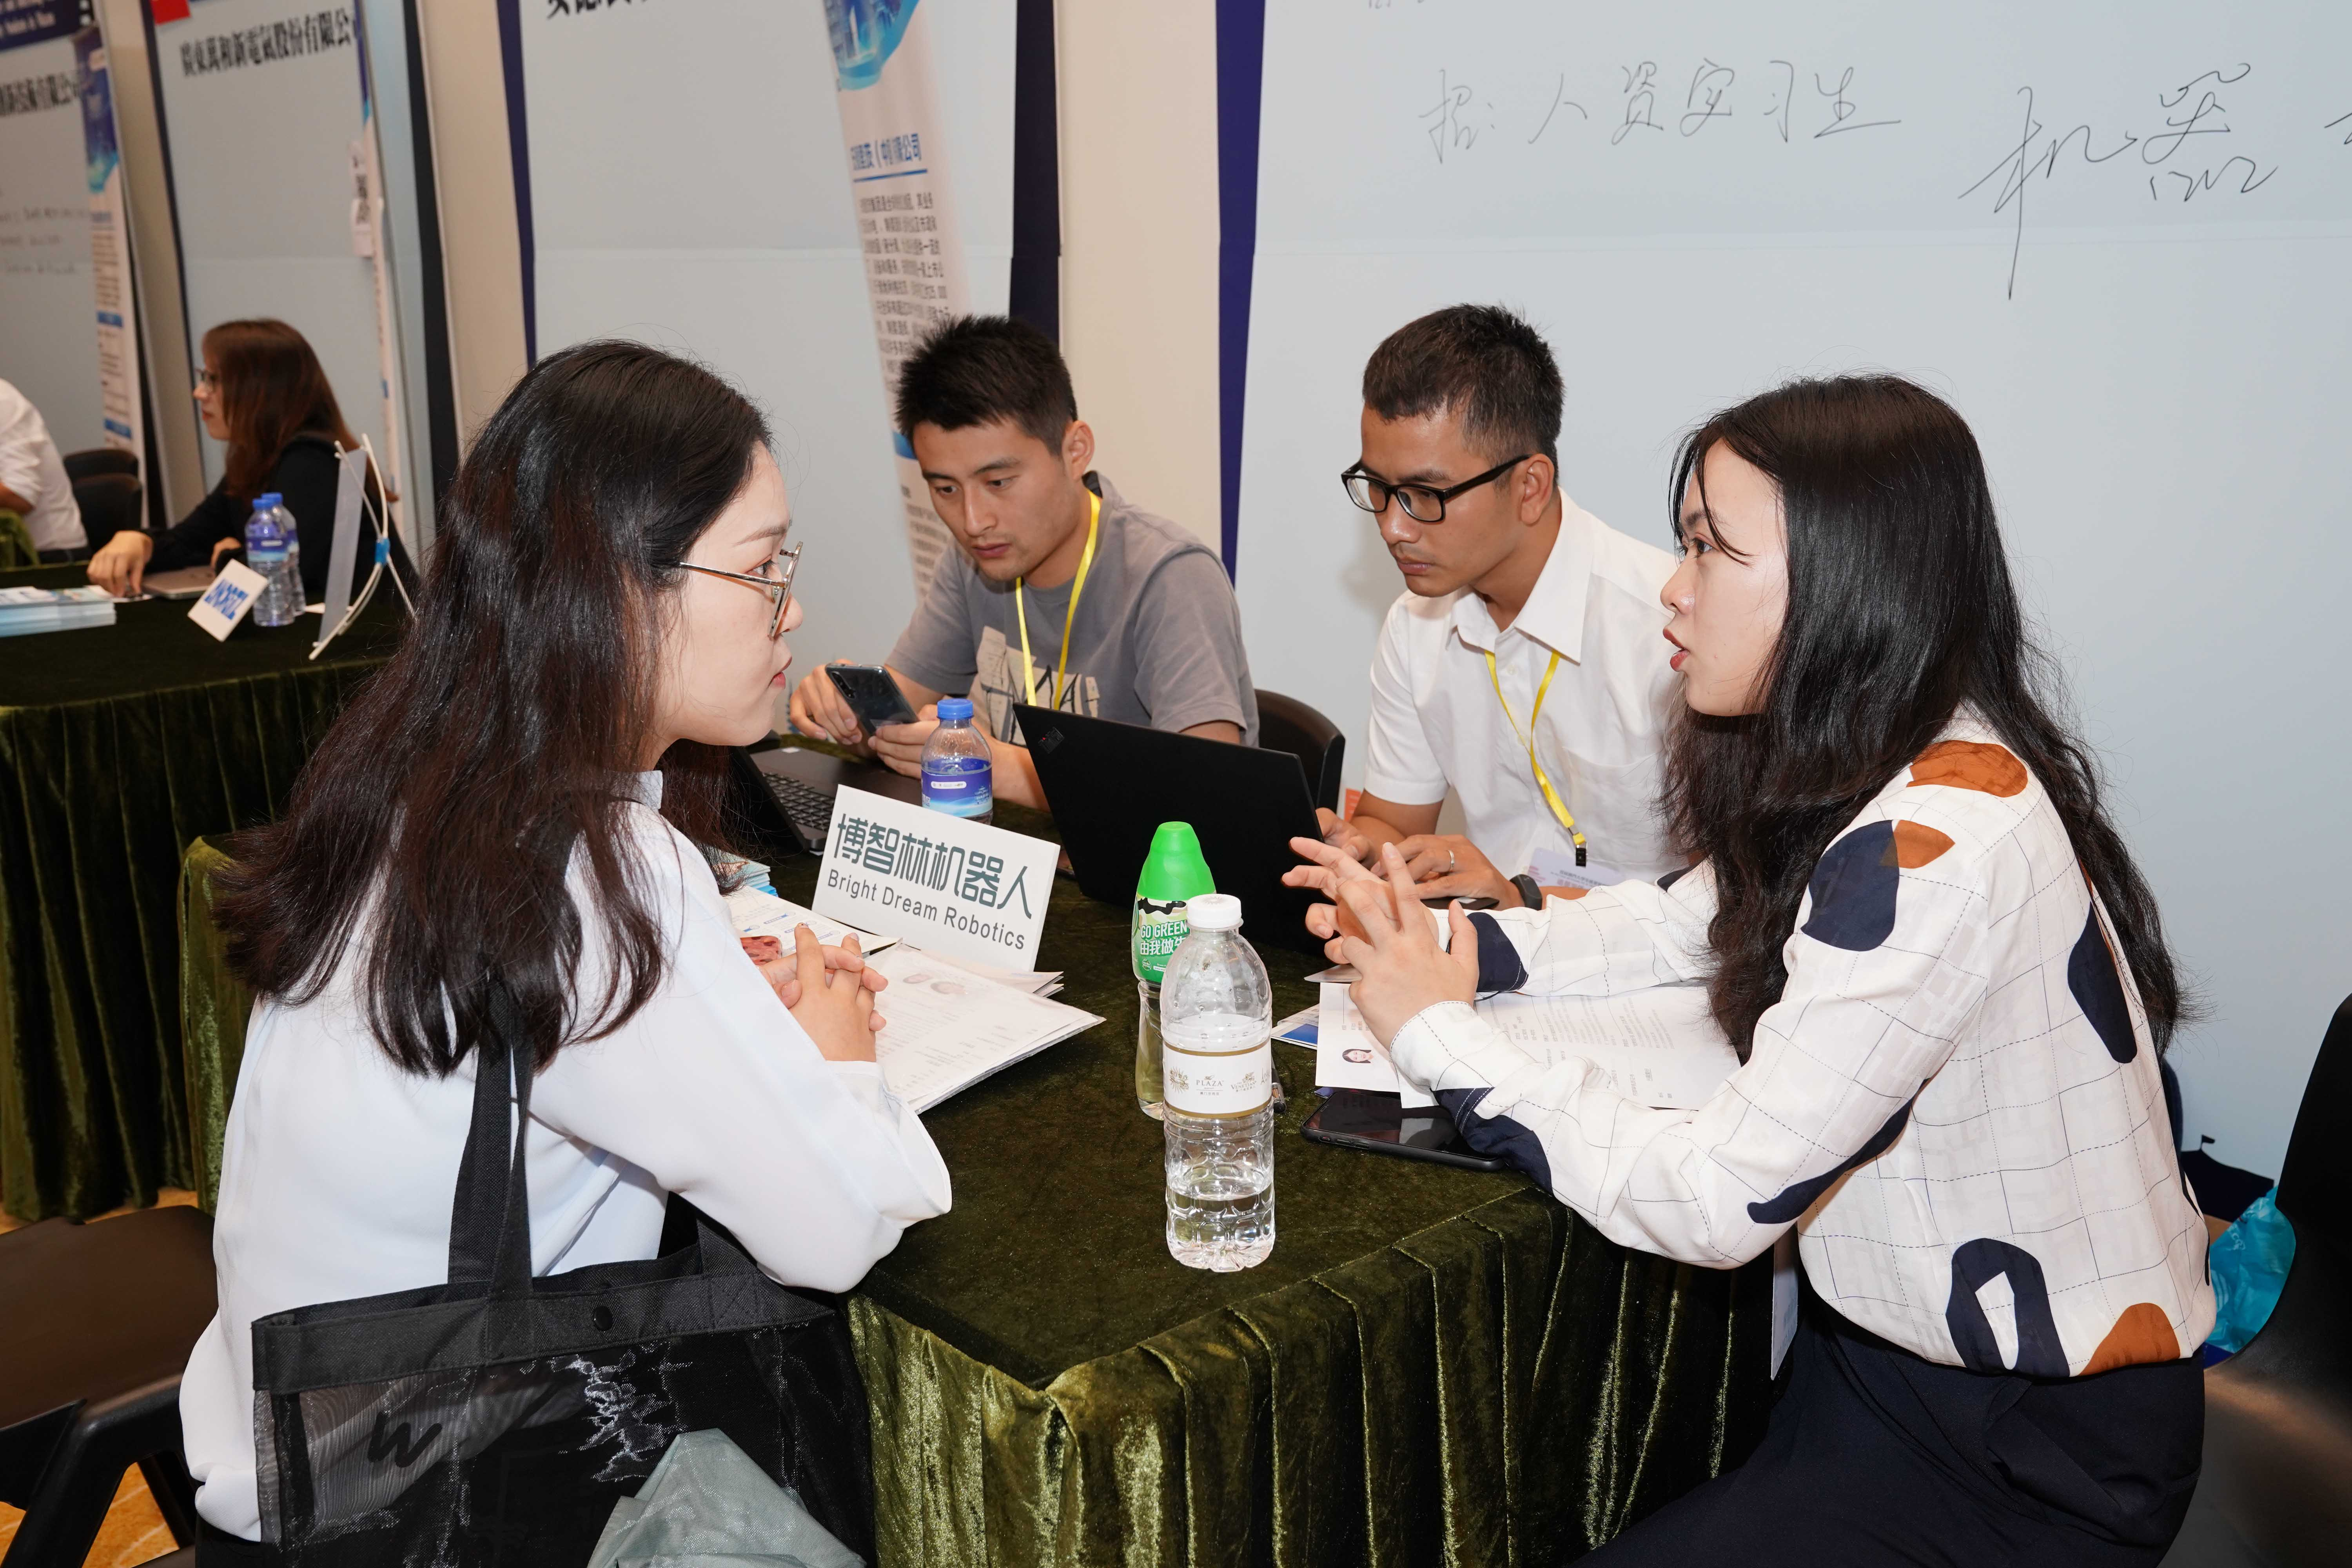 UM hosts the first career and internship fair for university students in Macao